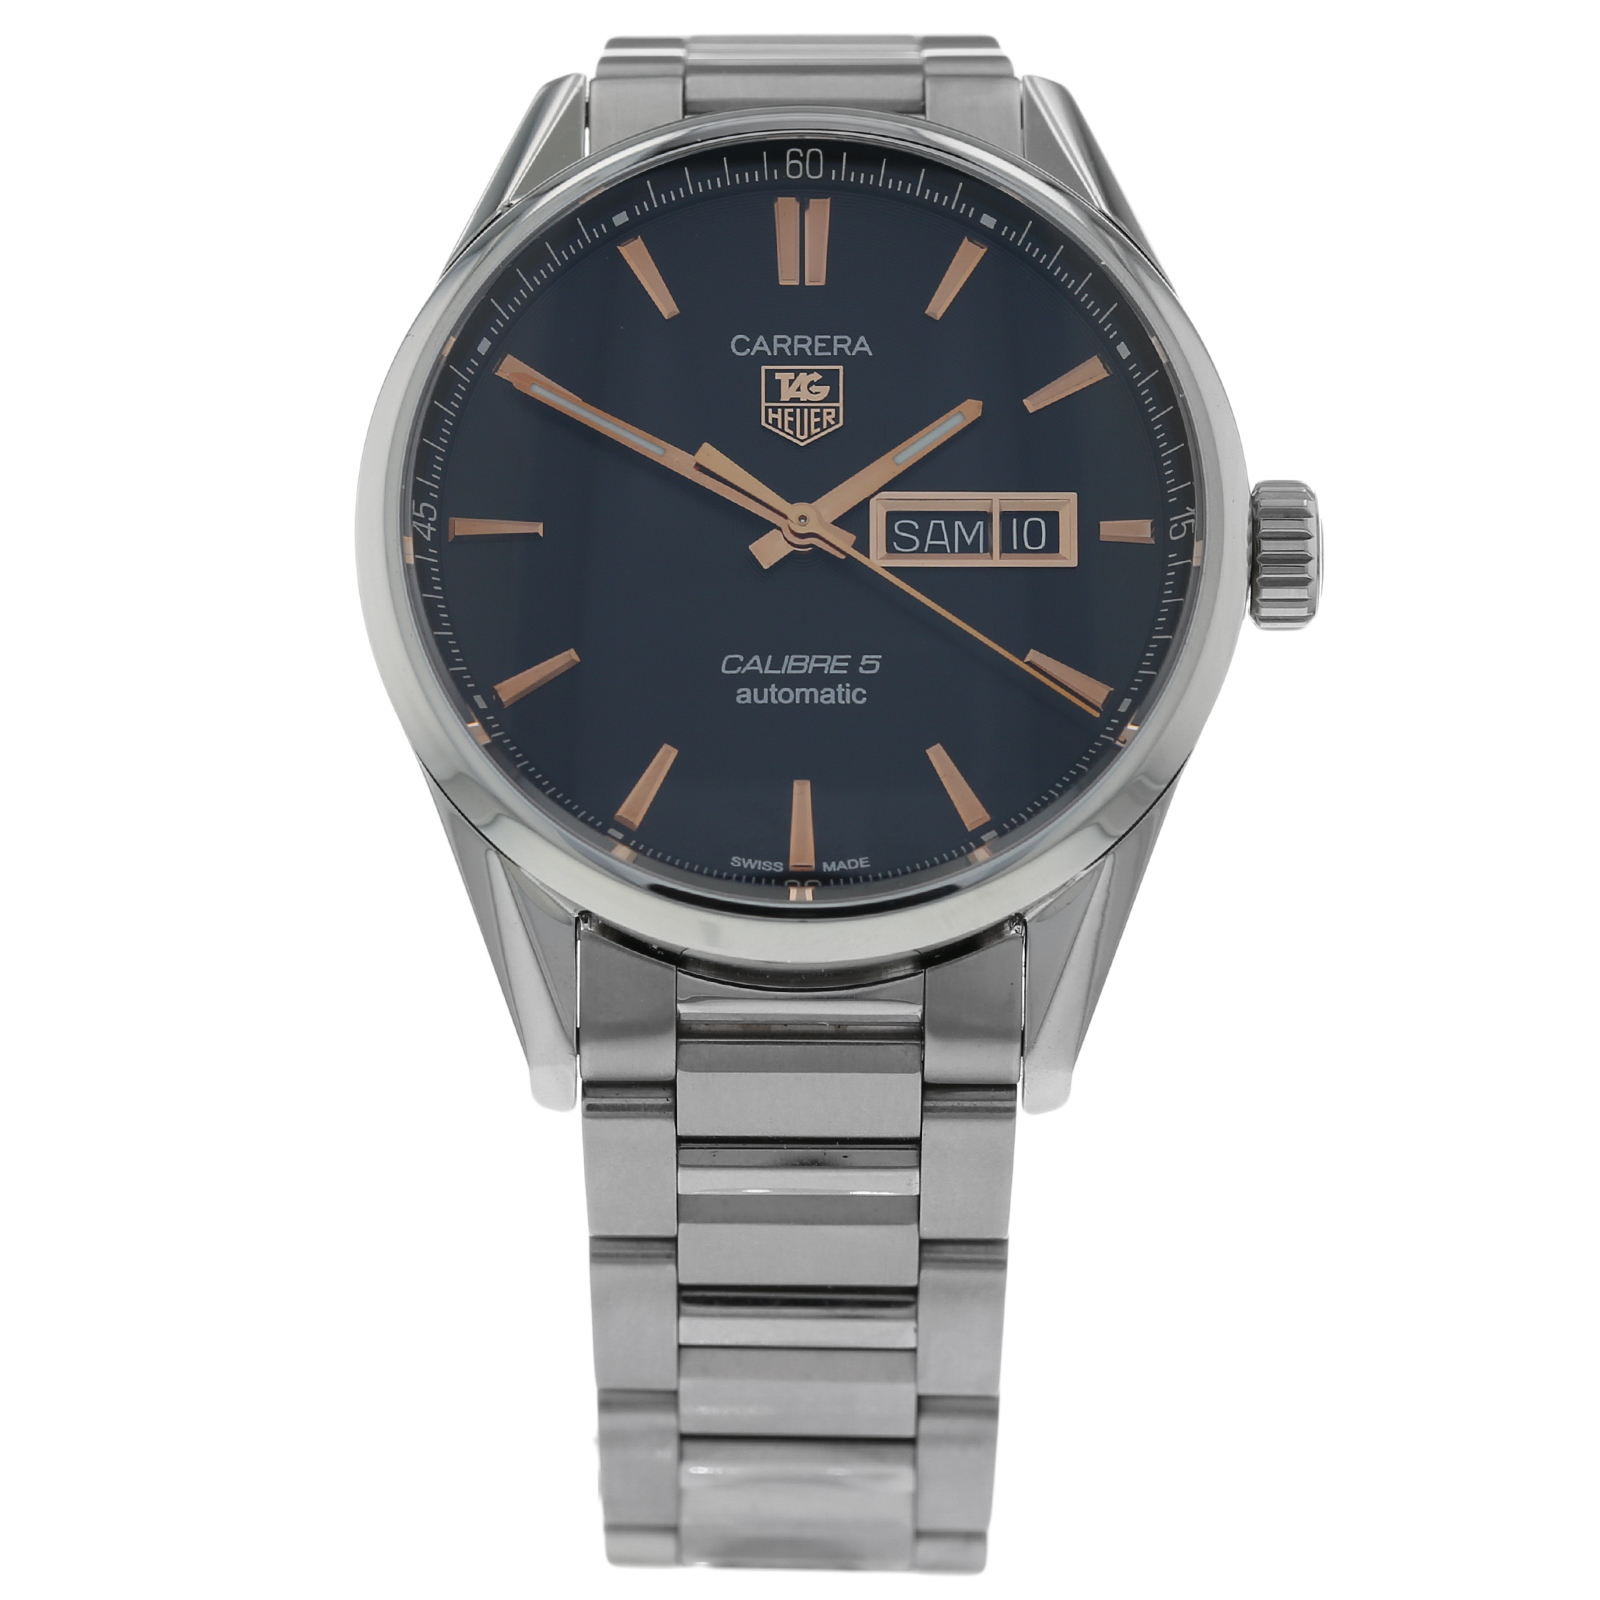 8c29165f481 Pre-Owned TAG Heuer Carrera Calibre 5 Day-Date Mens Watch WAR201C-1 | Pre  Owned Watches | Goldsmiths